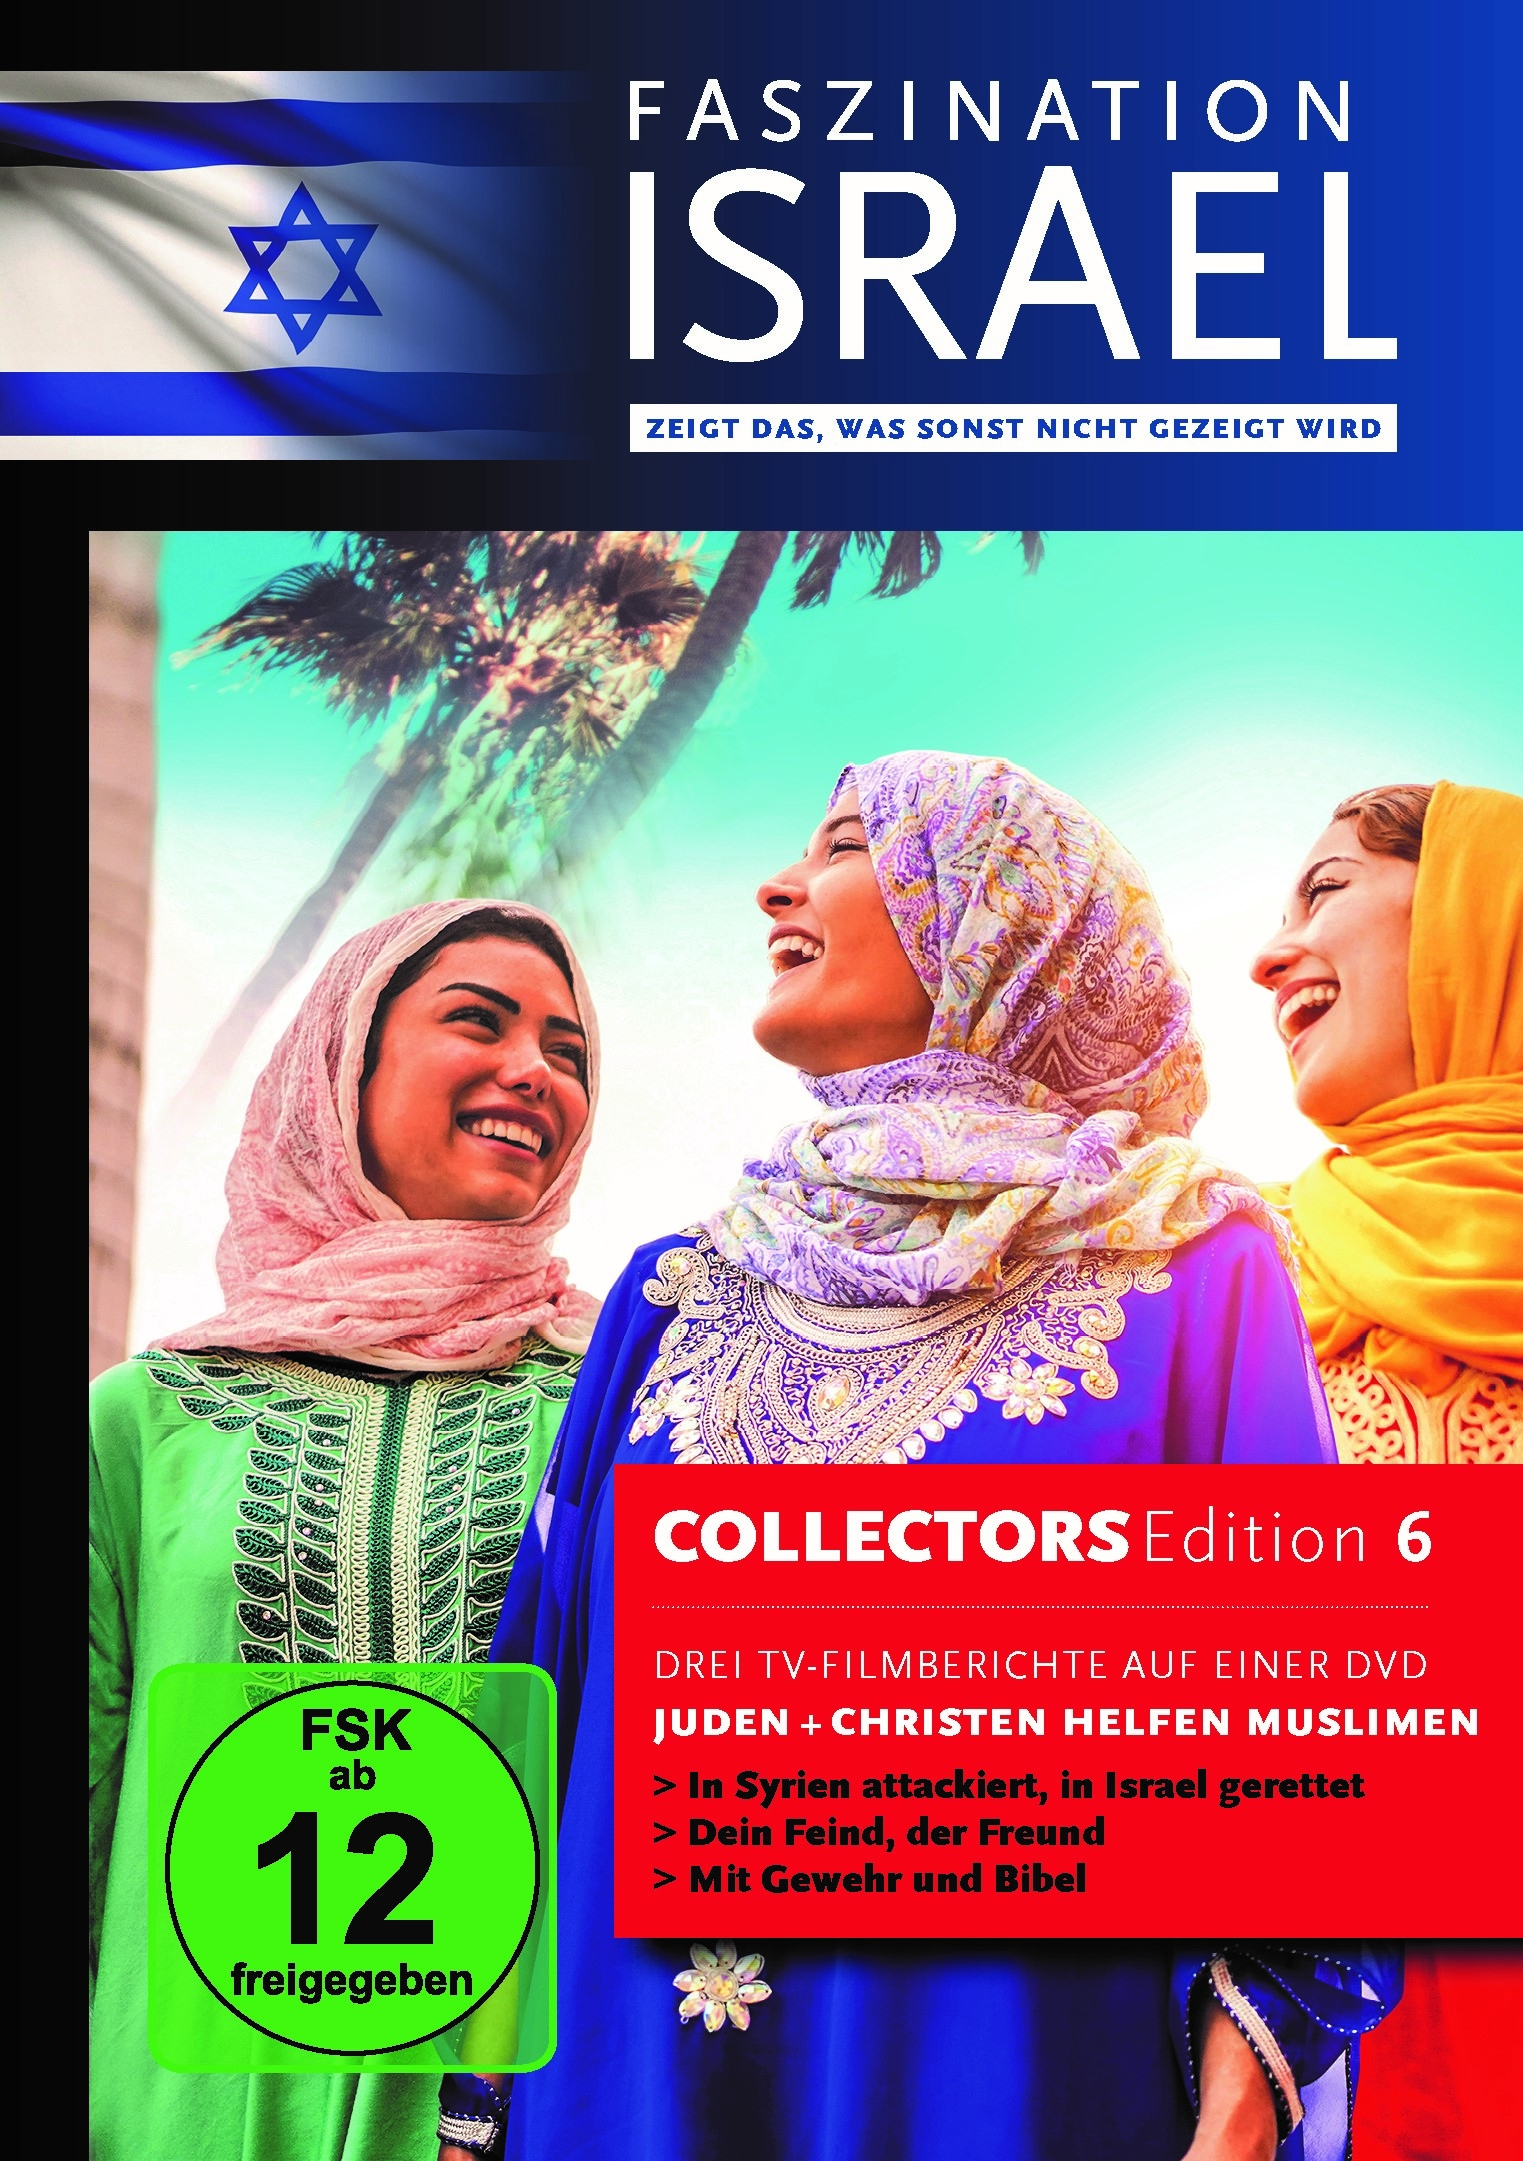 Faszination Israel - Juden und Christen helfen Muslimen|Collectors Edition 6